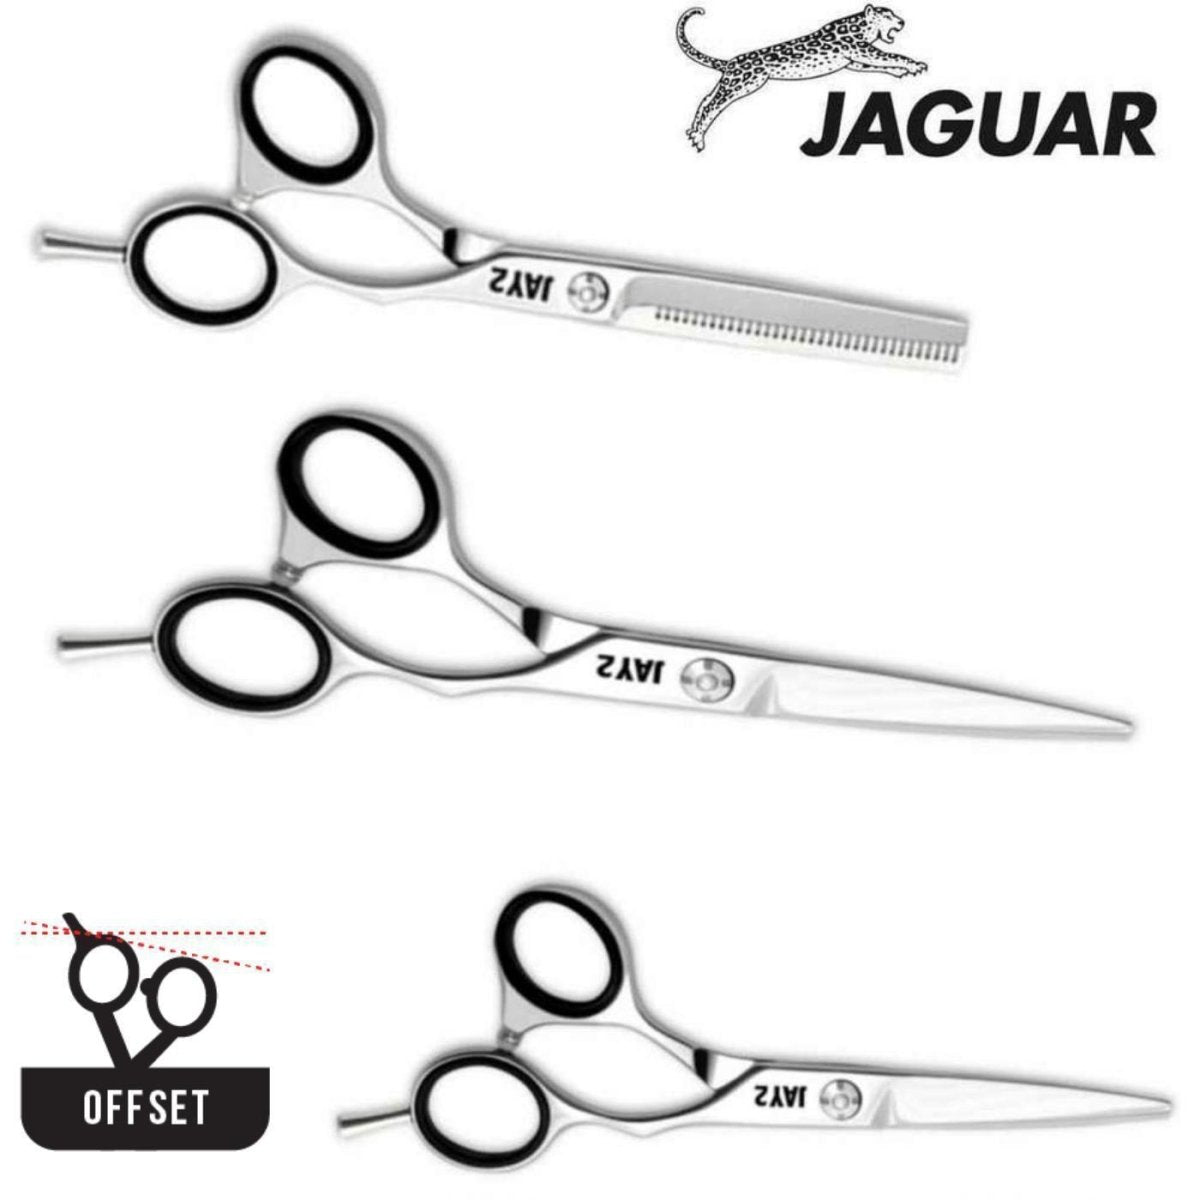 Jaguar Hairdressing Scissor Sets